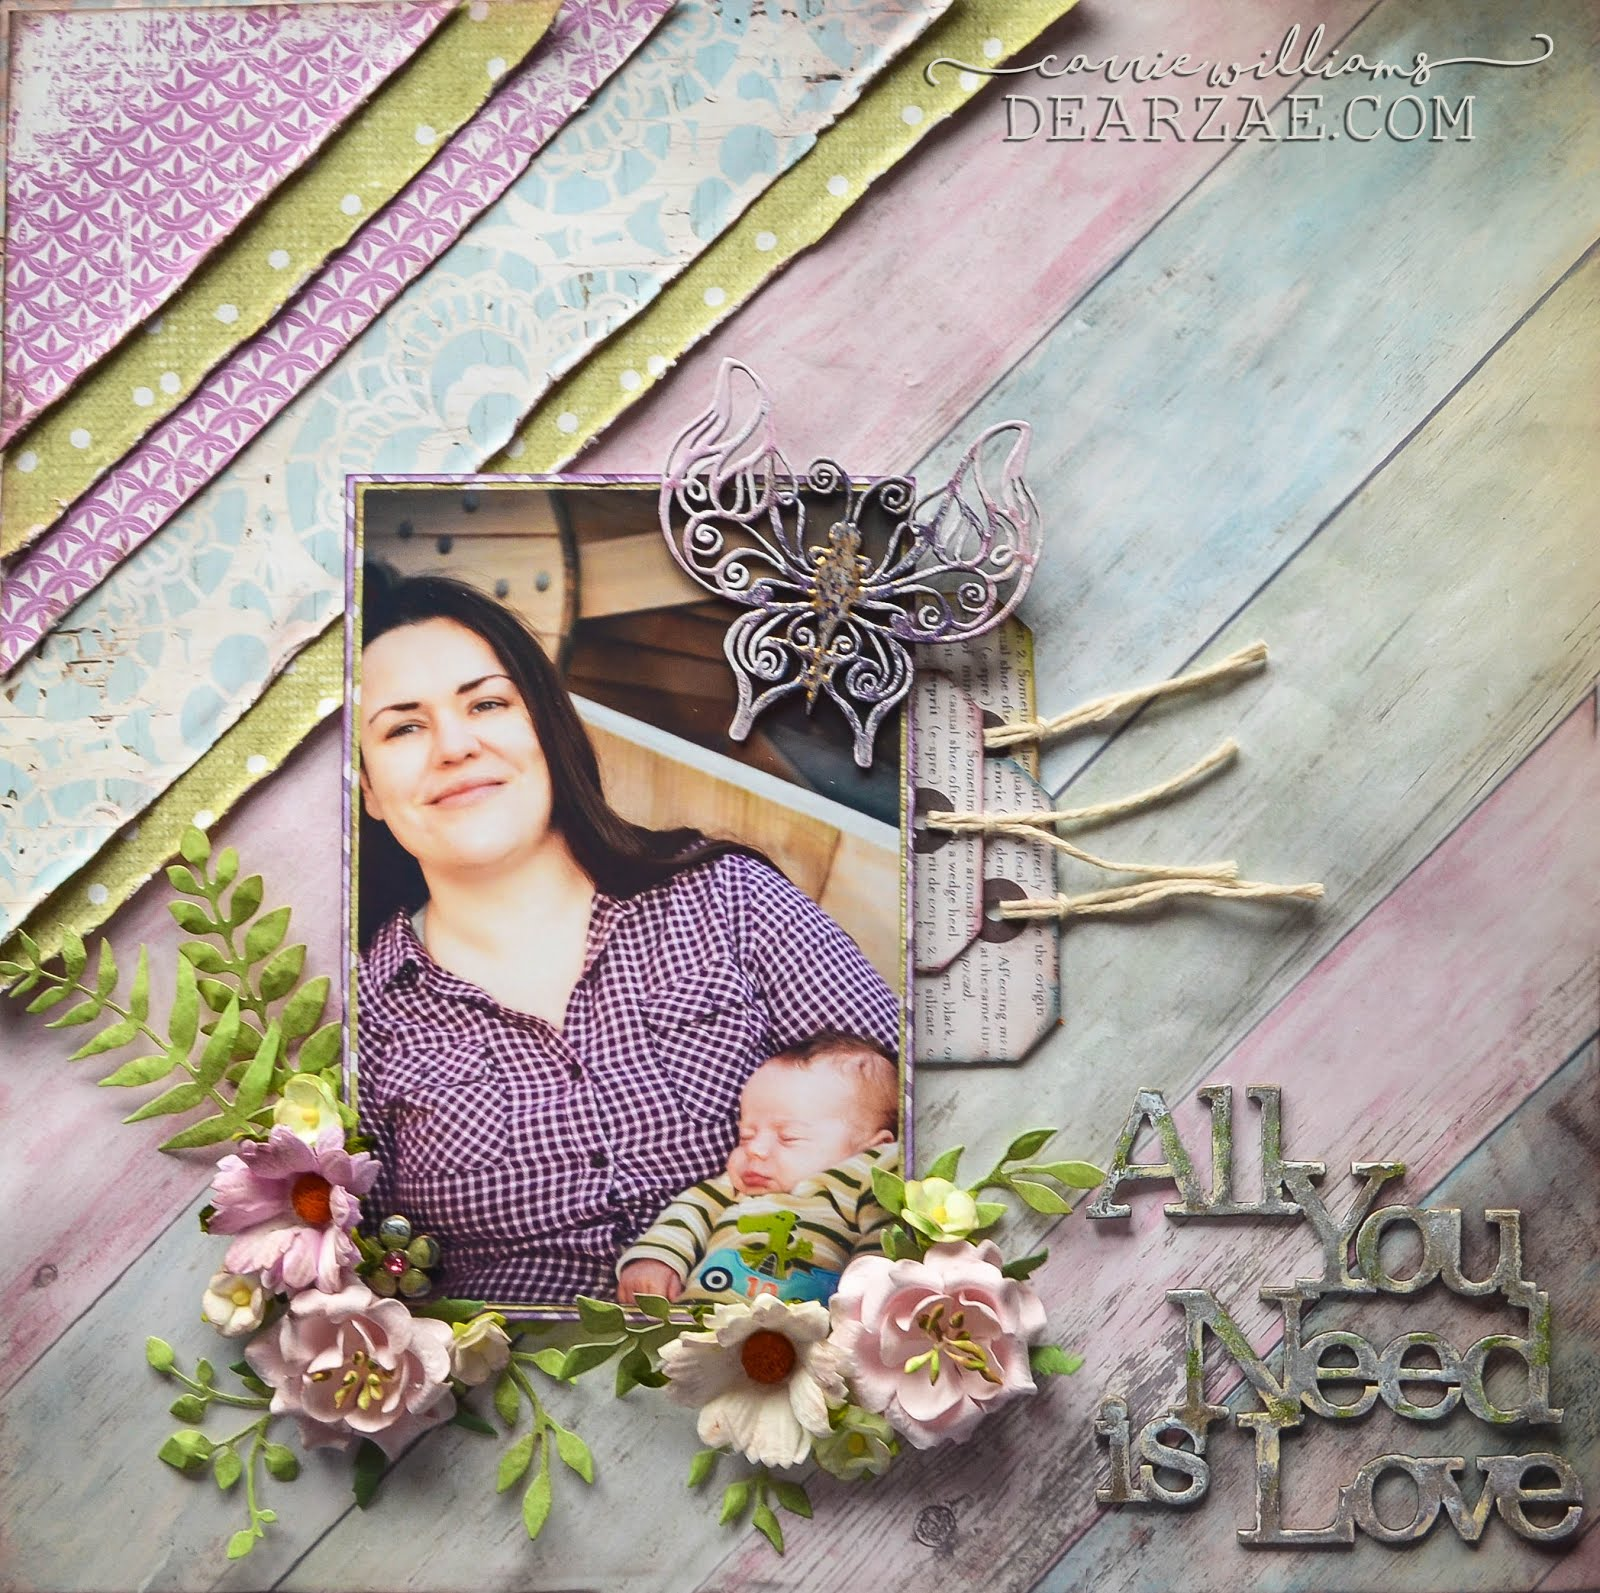 Shabby Boho Chic Scrapbooking Page Layout in purple, pink, sage green, and baby blue with Blue Fern Studios and Wild Orchid Crafts mulberry paper flowers, Sizzix Big Shot die cut leaves, with mixed media background pearlescent watercolors & Paper House Productions Wedding Day B side papers & chipboard title